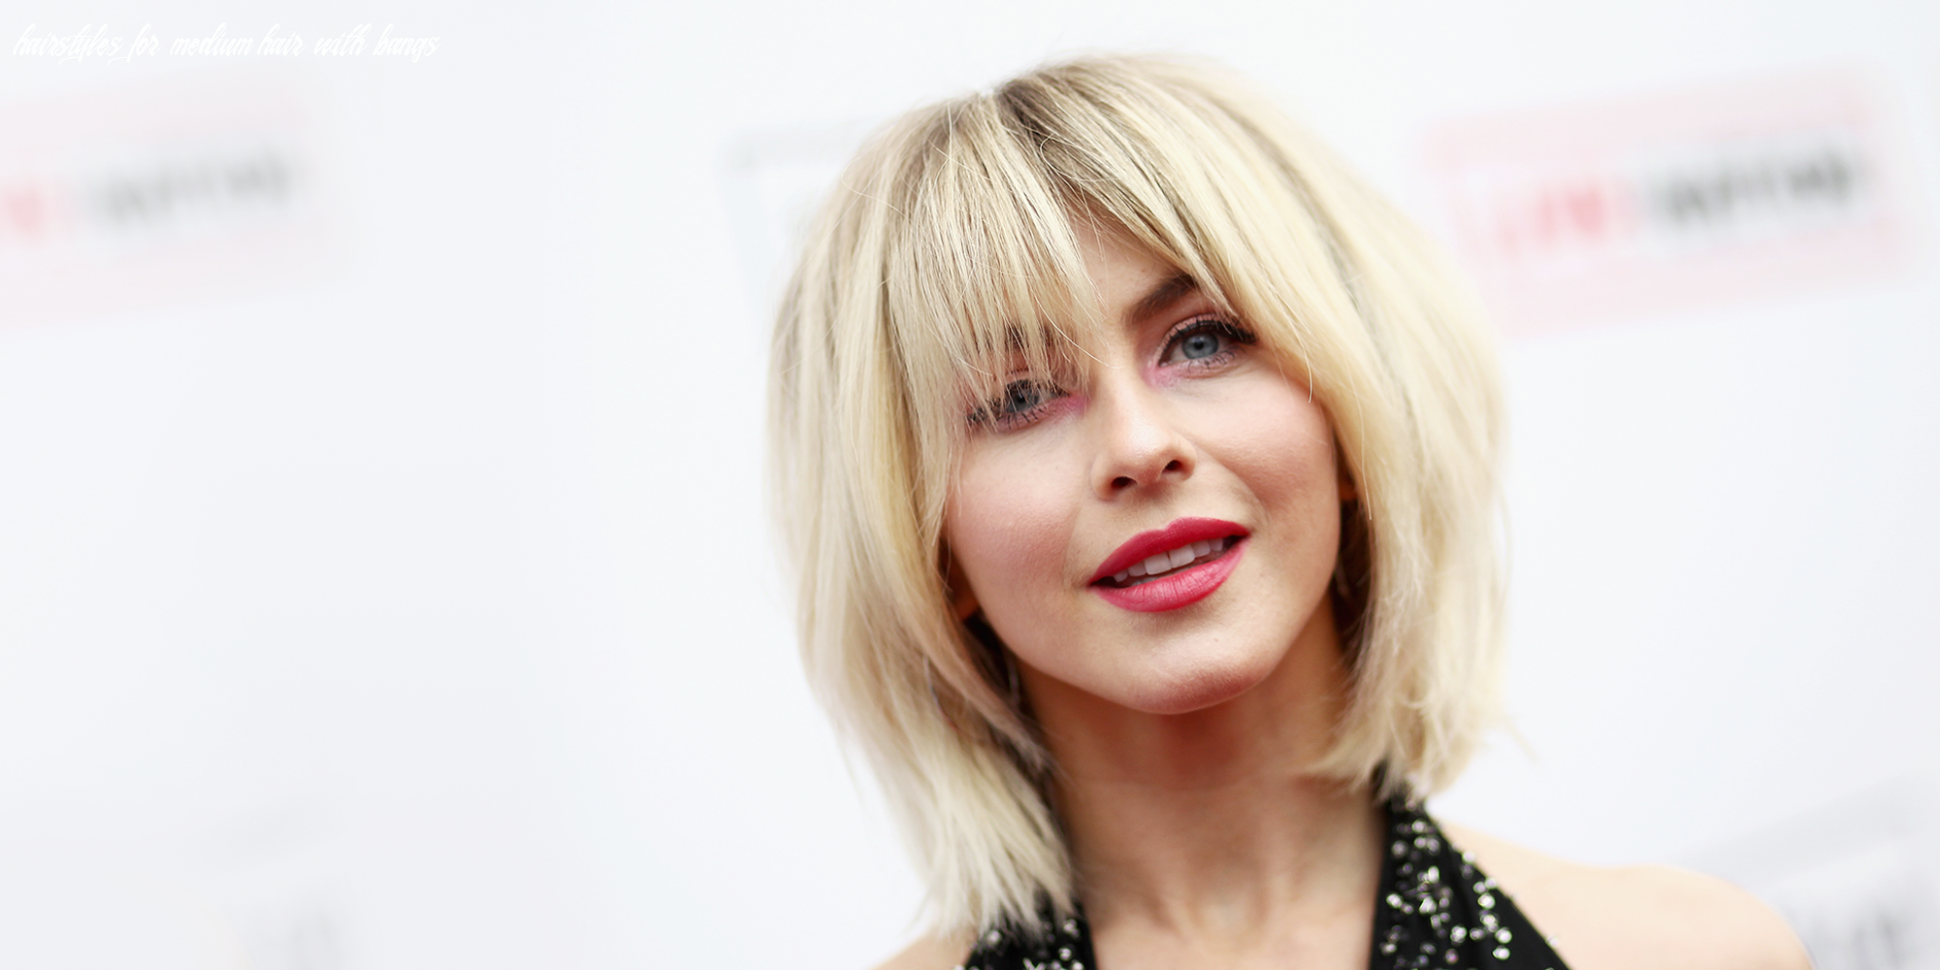 10 Best Hairstyles With Bangs - Photos of Celebrity Haircuts With ...